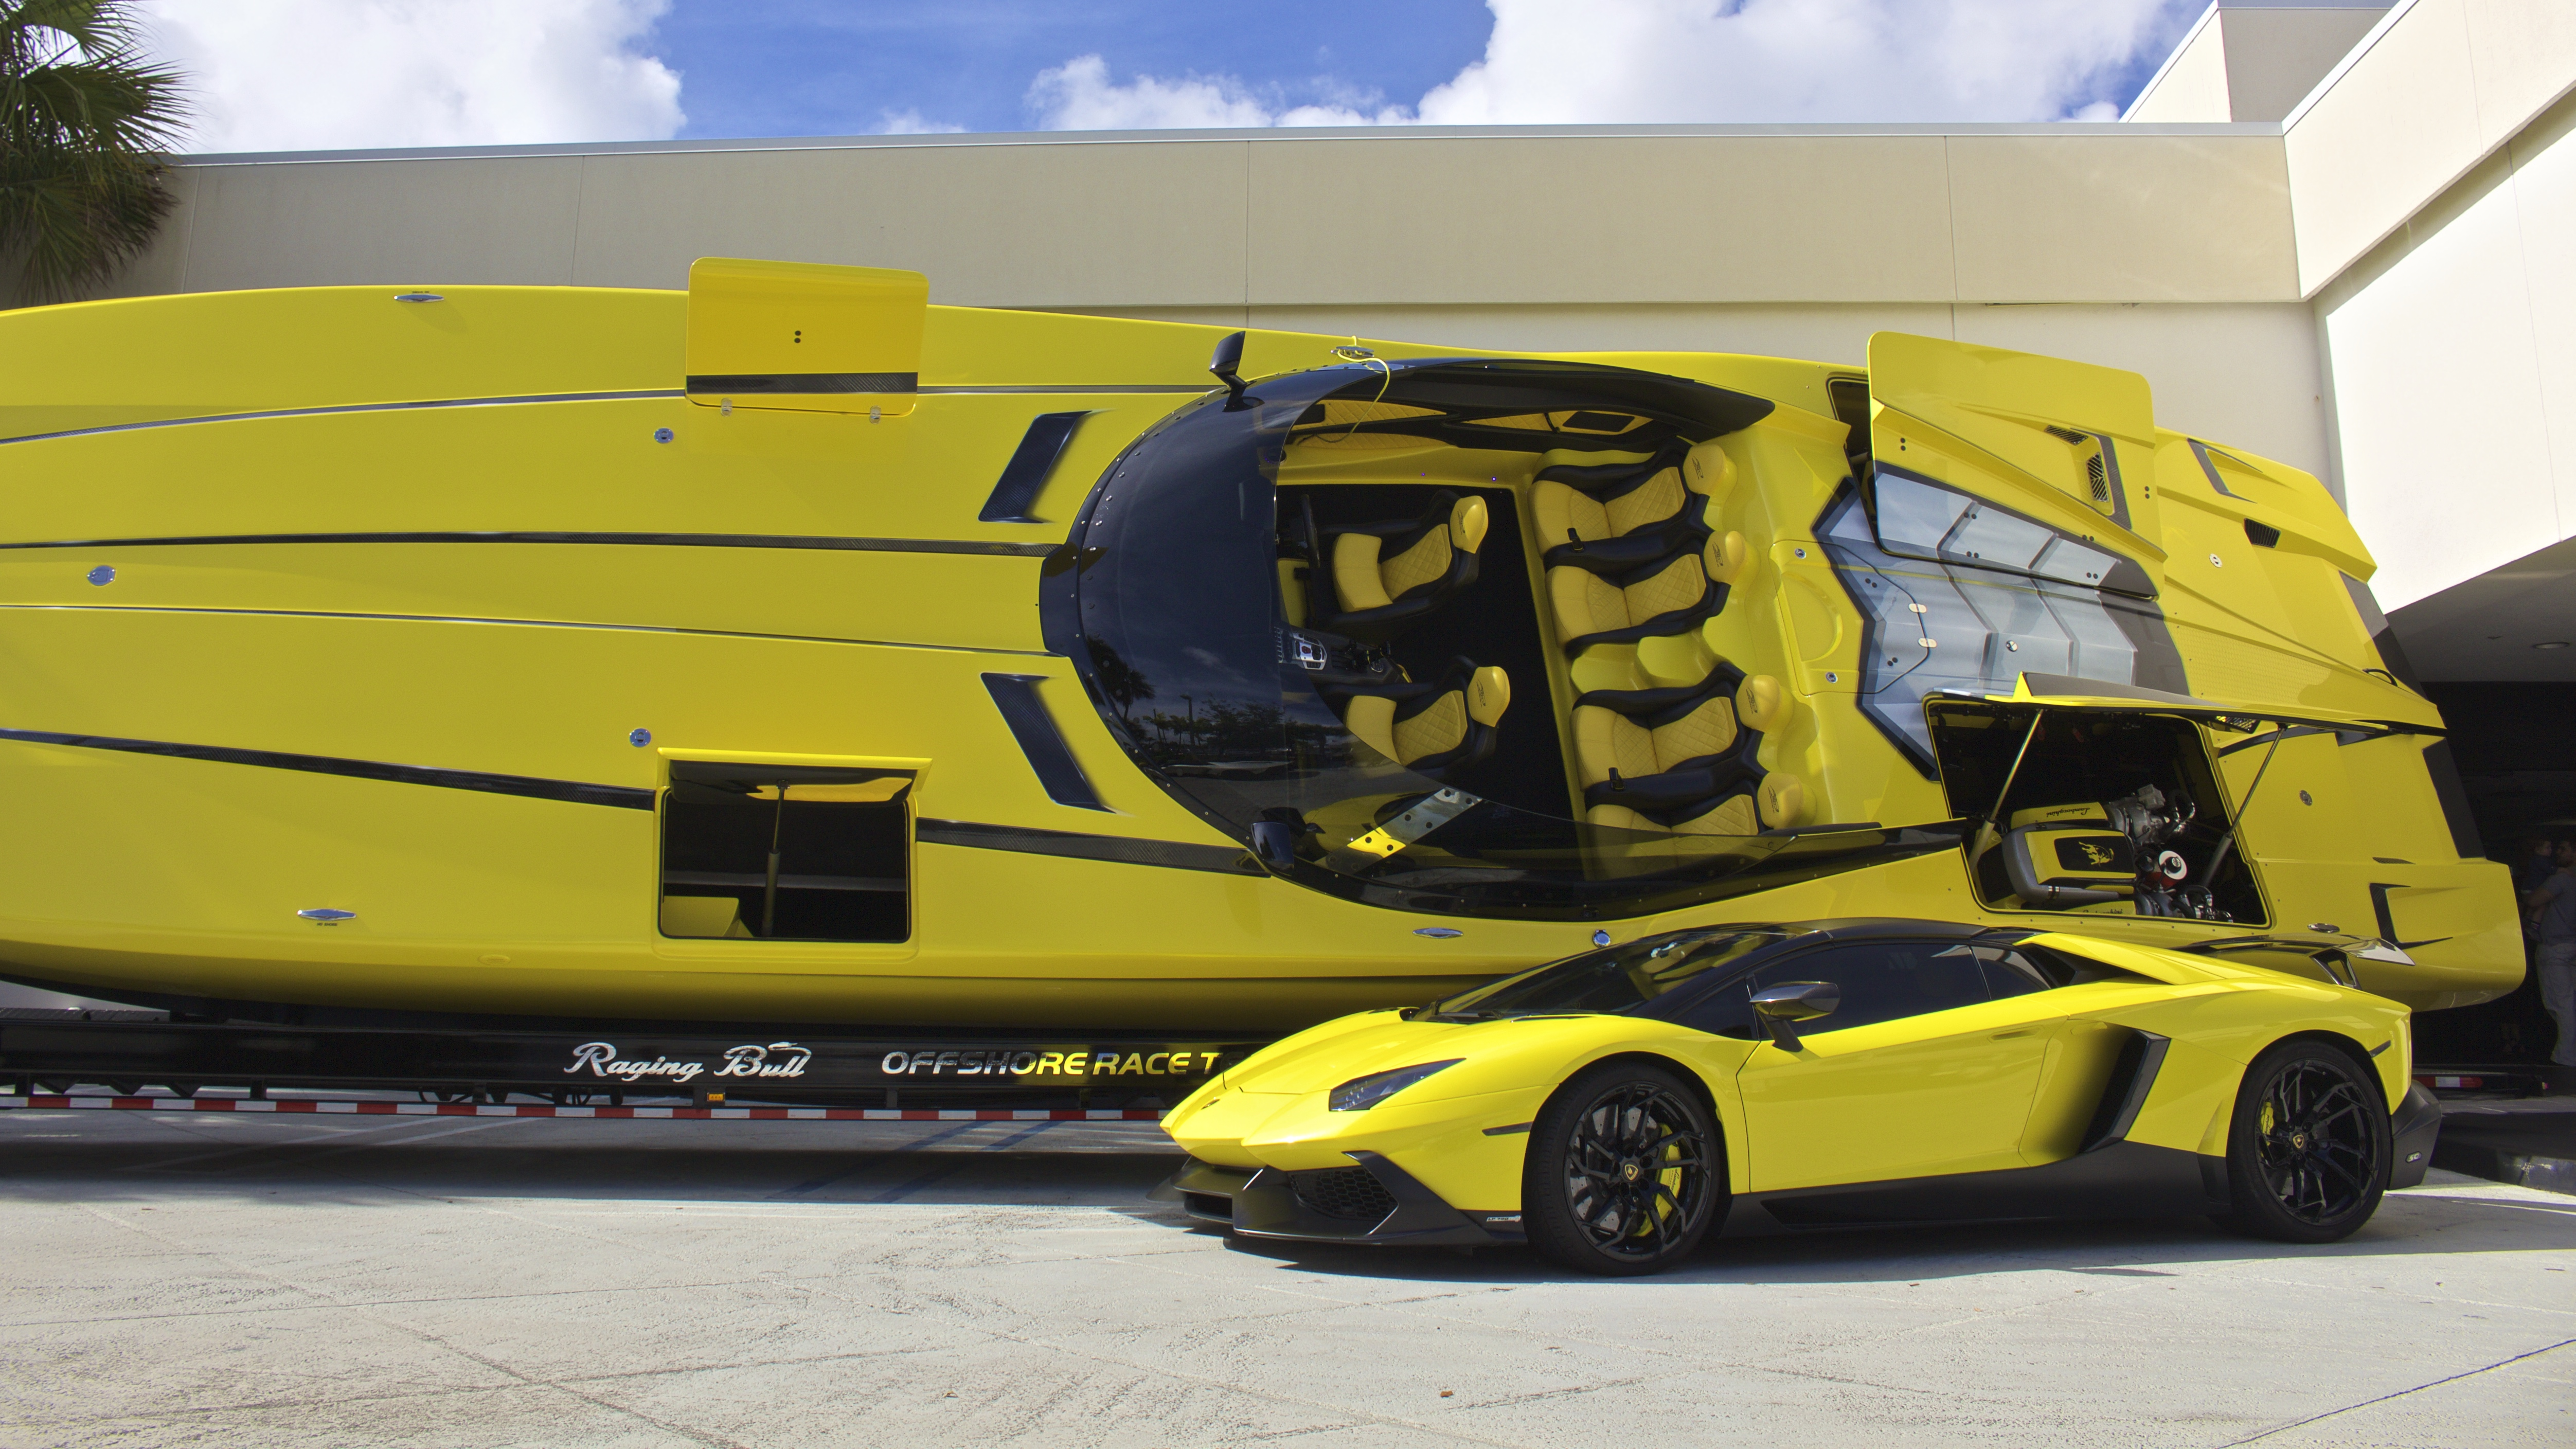 I Bet You Guys Never Saw A Lamborghini Boat With A Matching